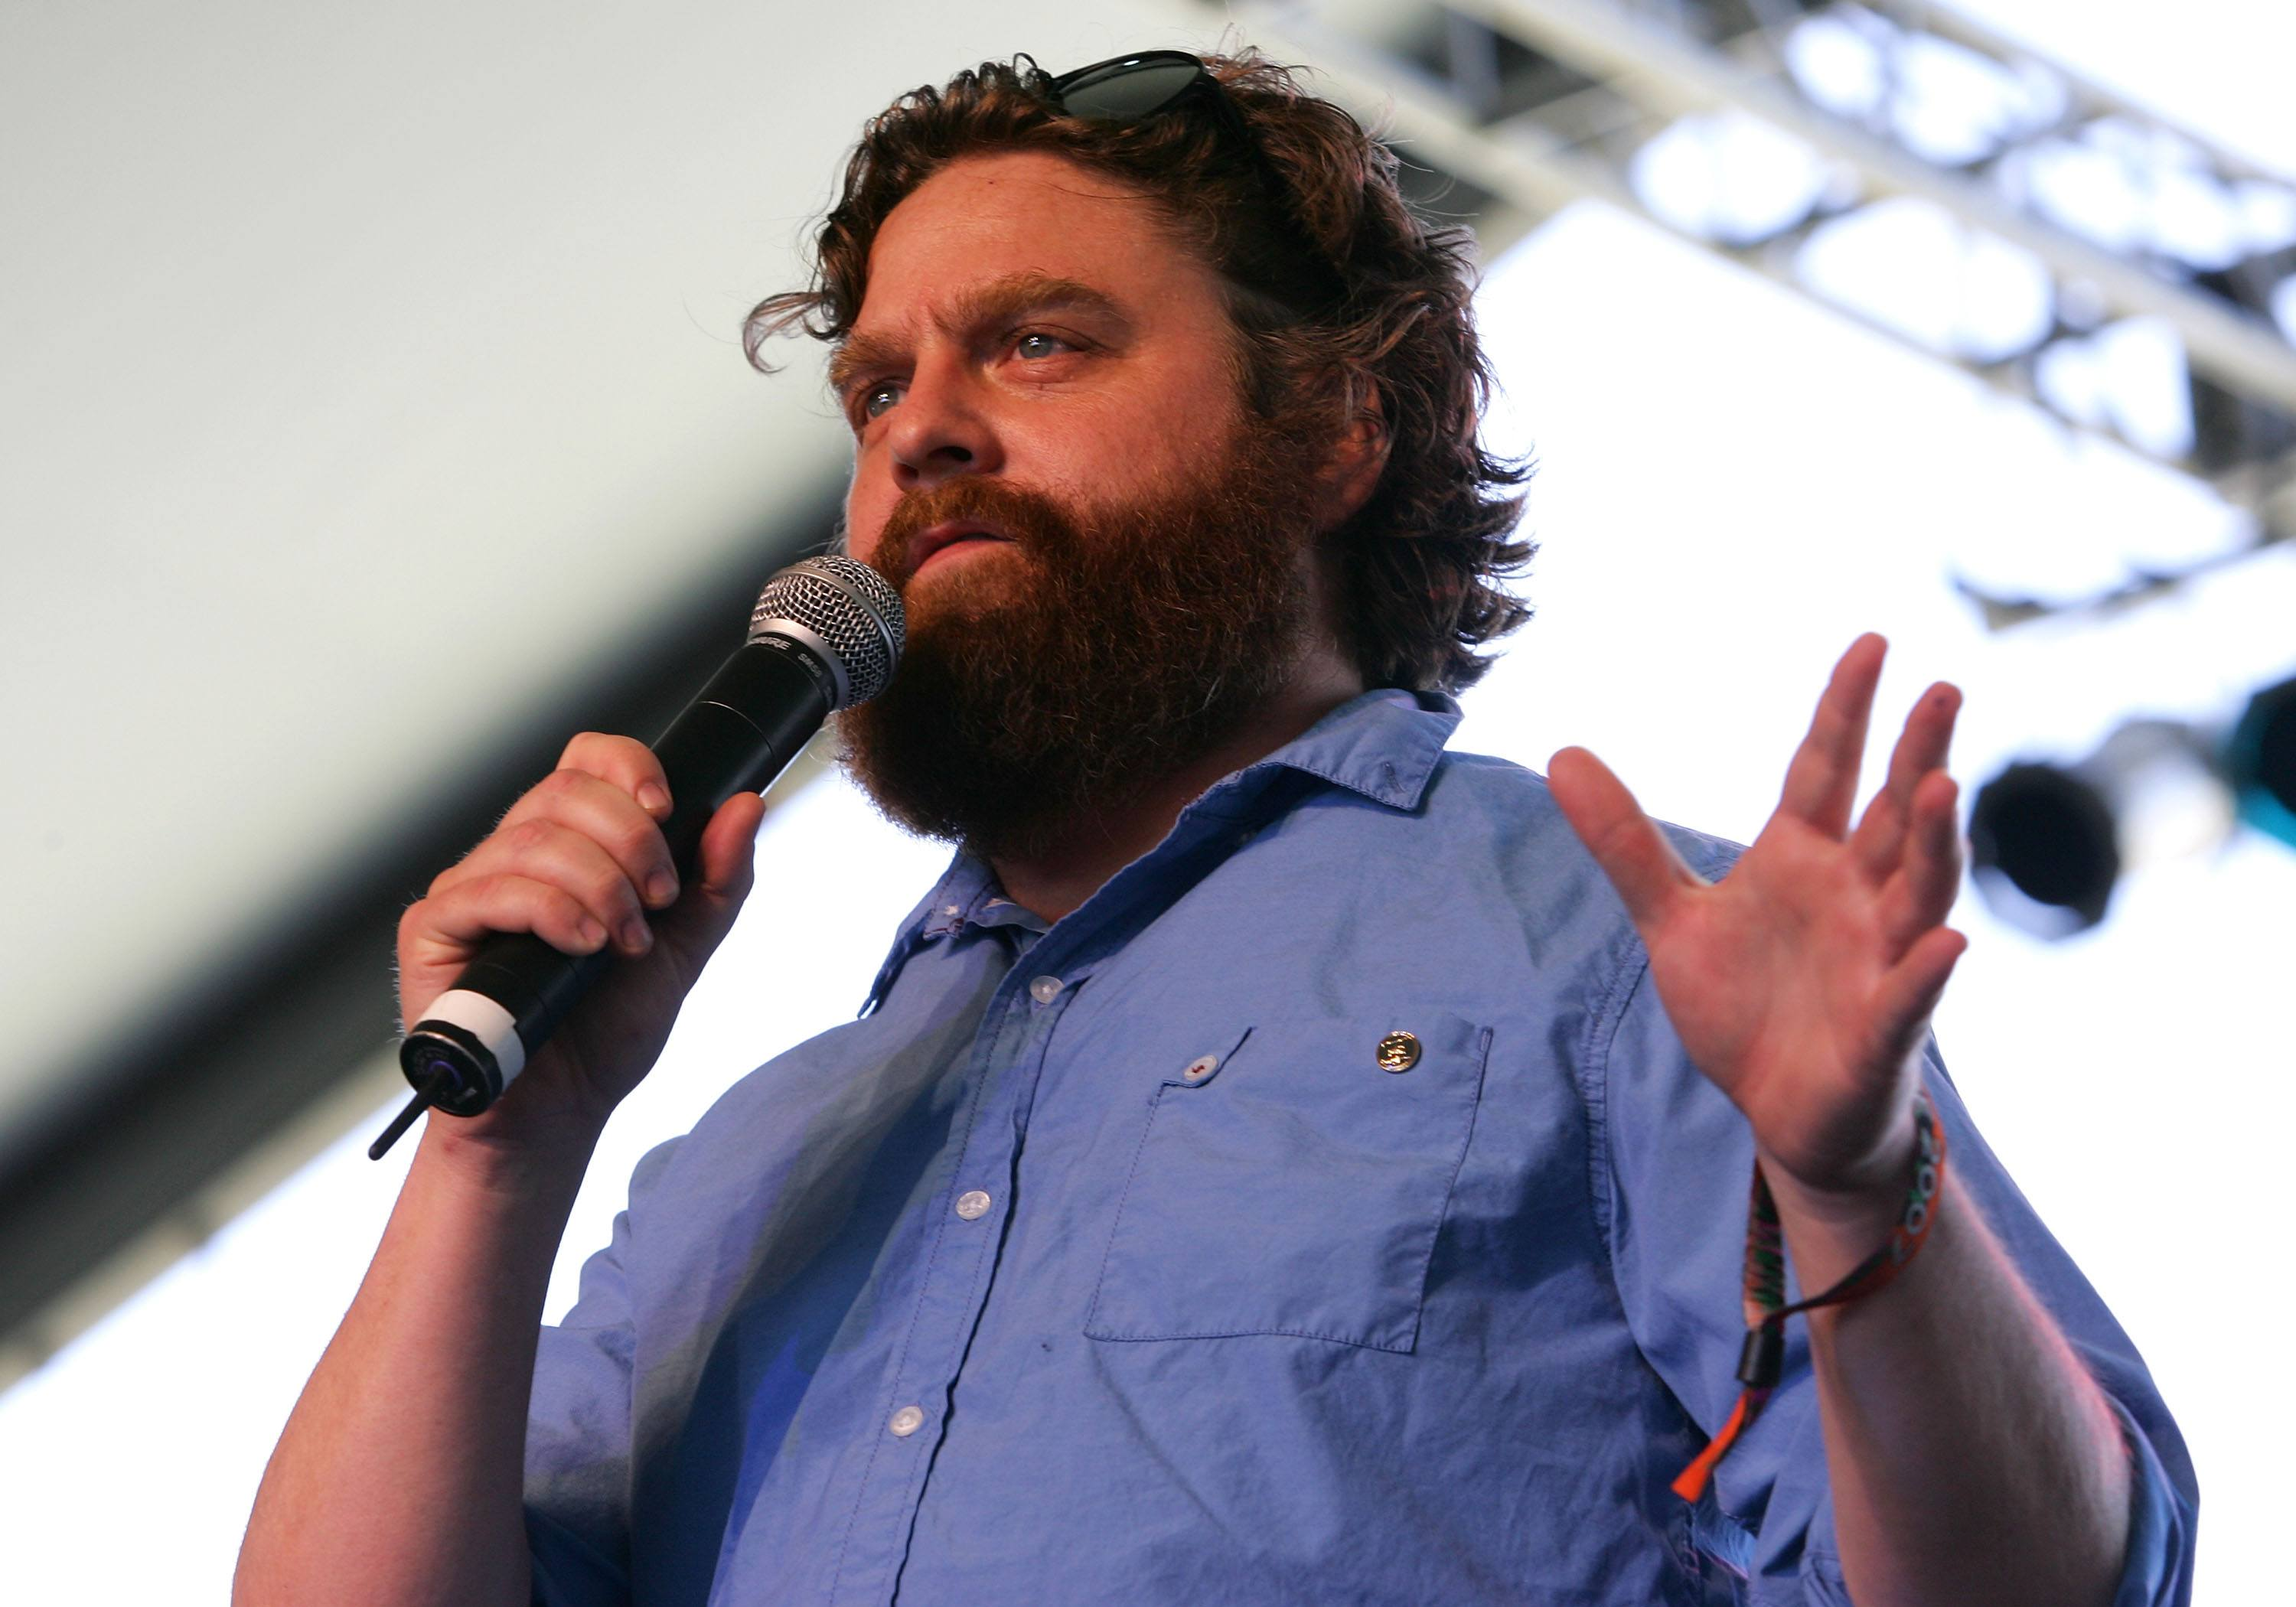 Zach Galifiankis doing standup at the Coachella festival in 2007.